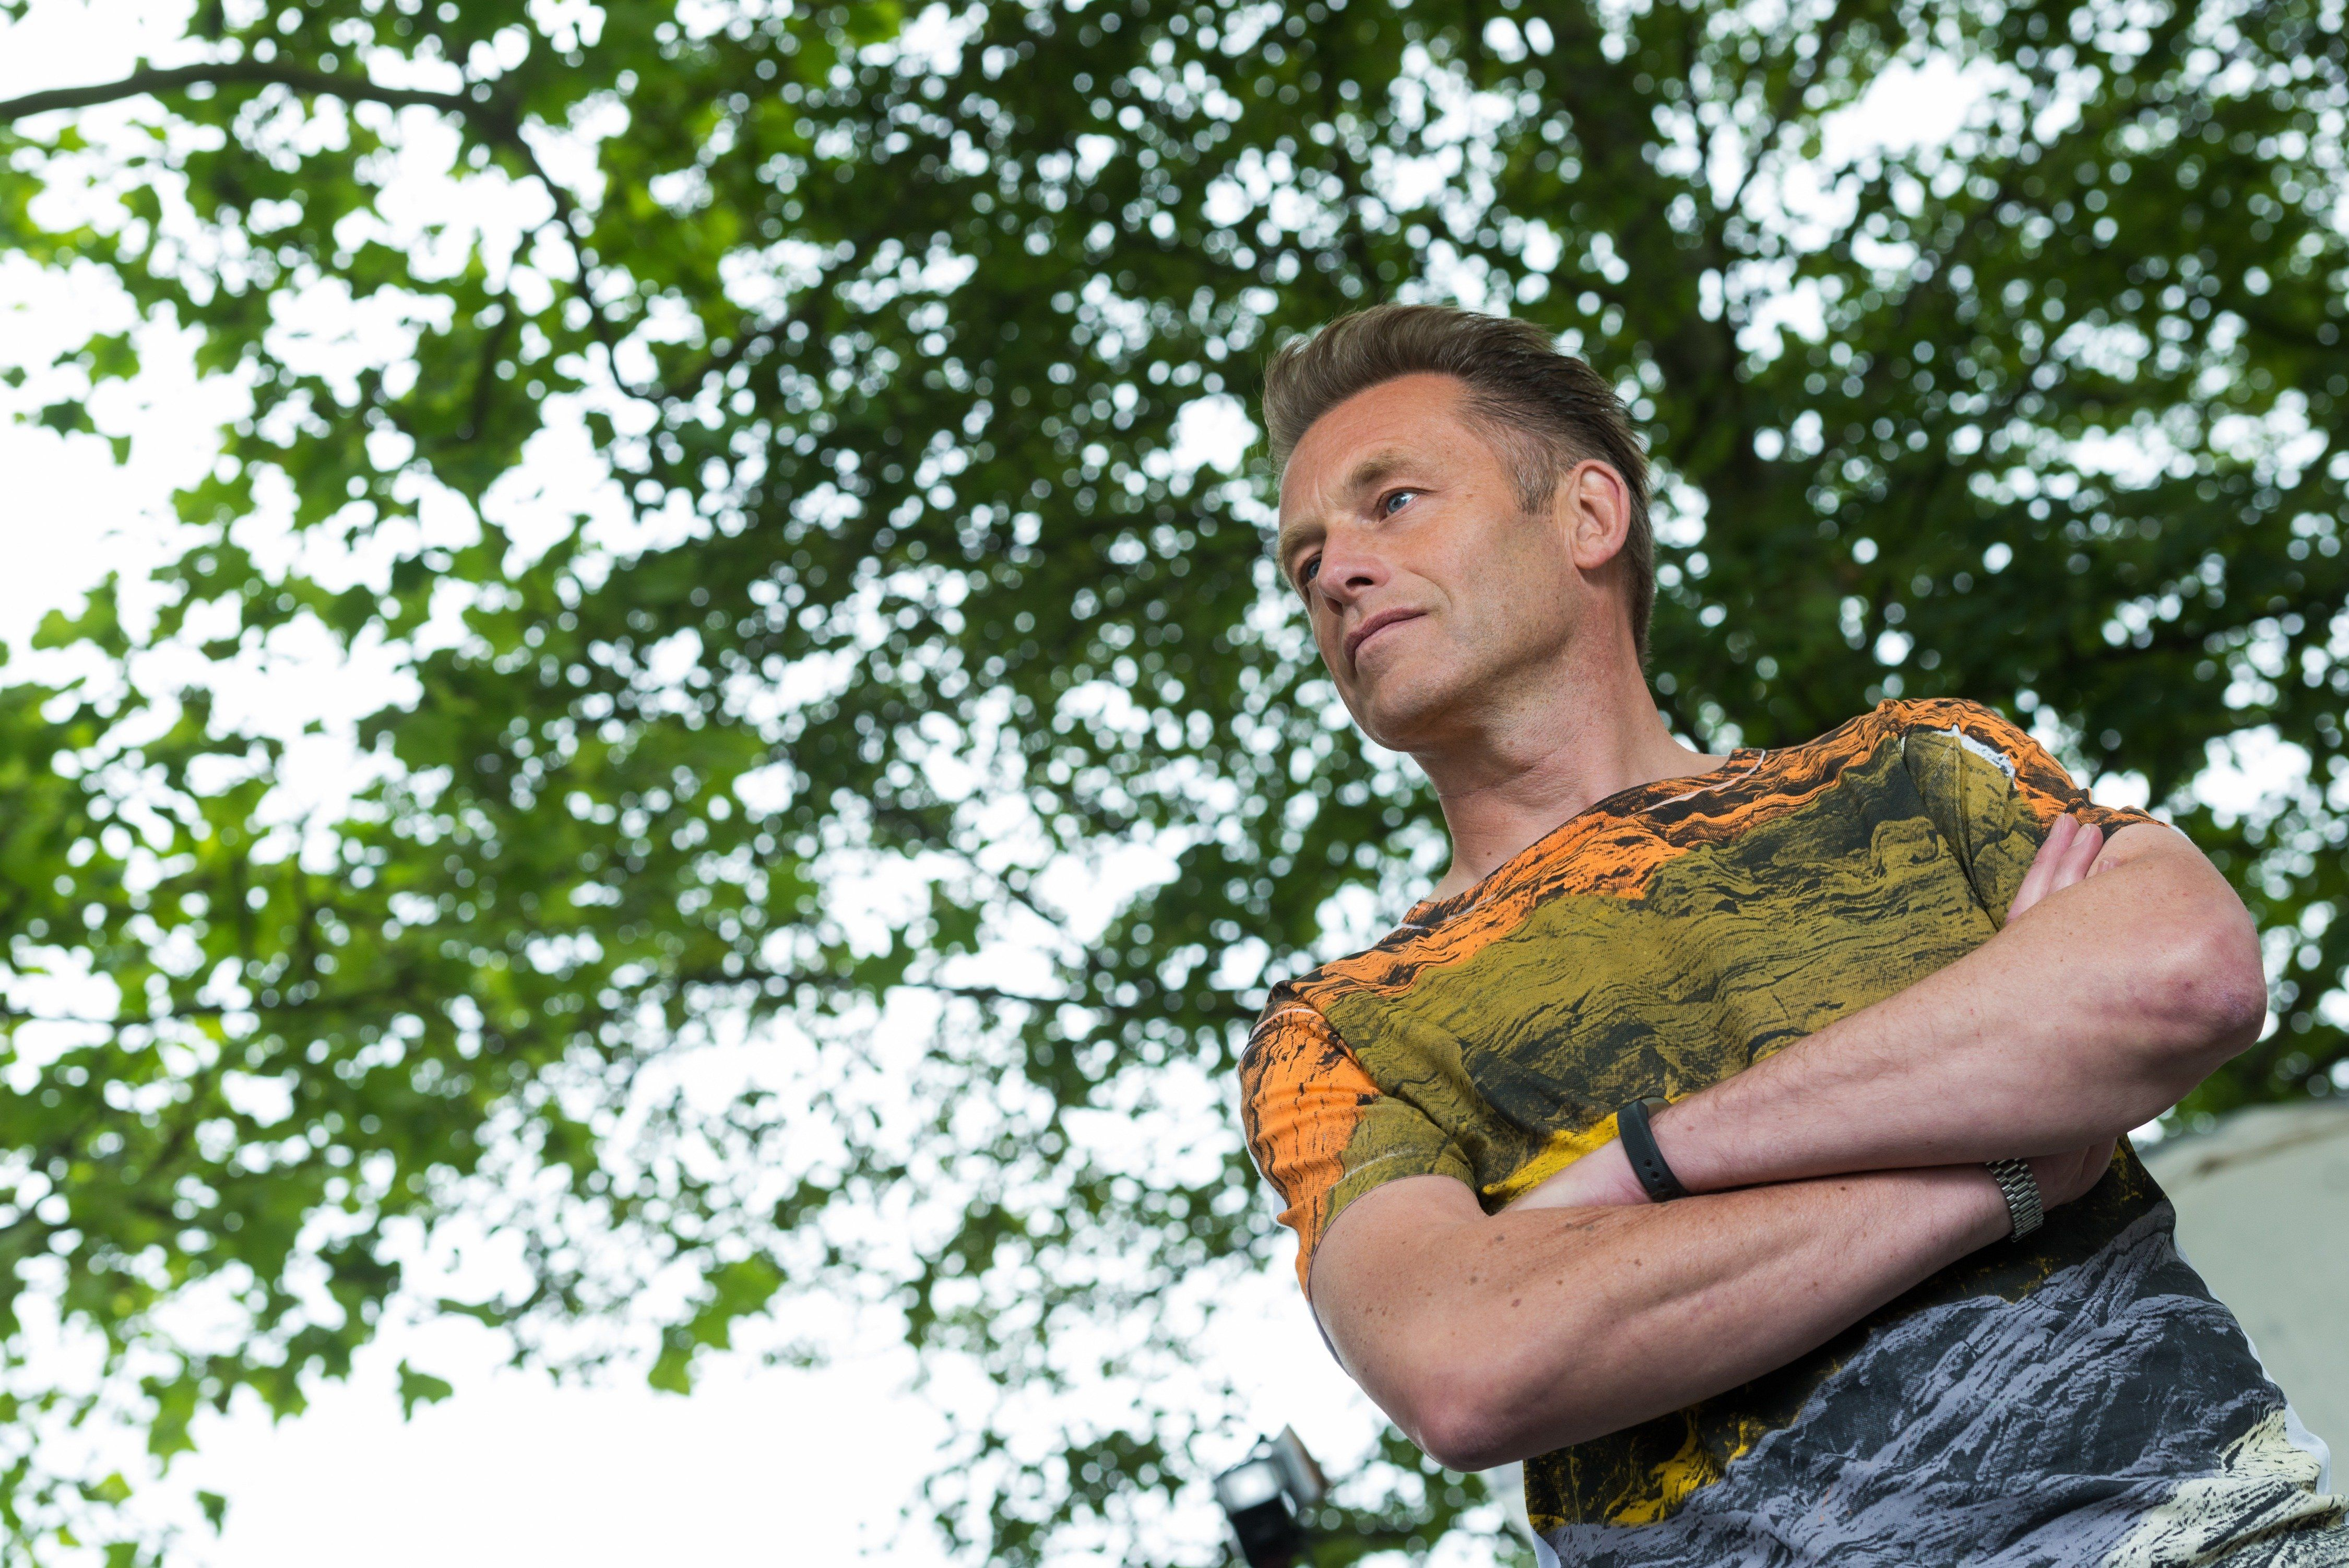 'Springwatch' Presenter Chris Packham Opens Up About Living With Asperger's